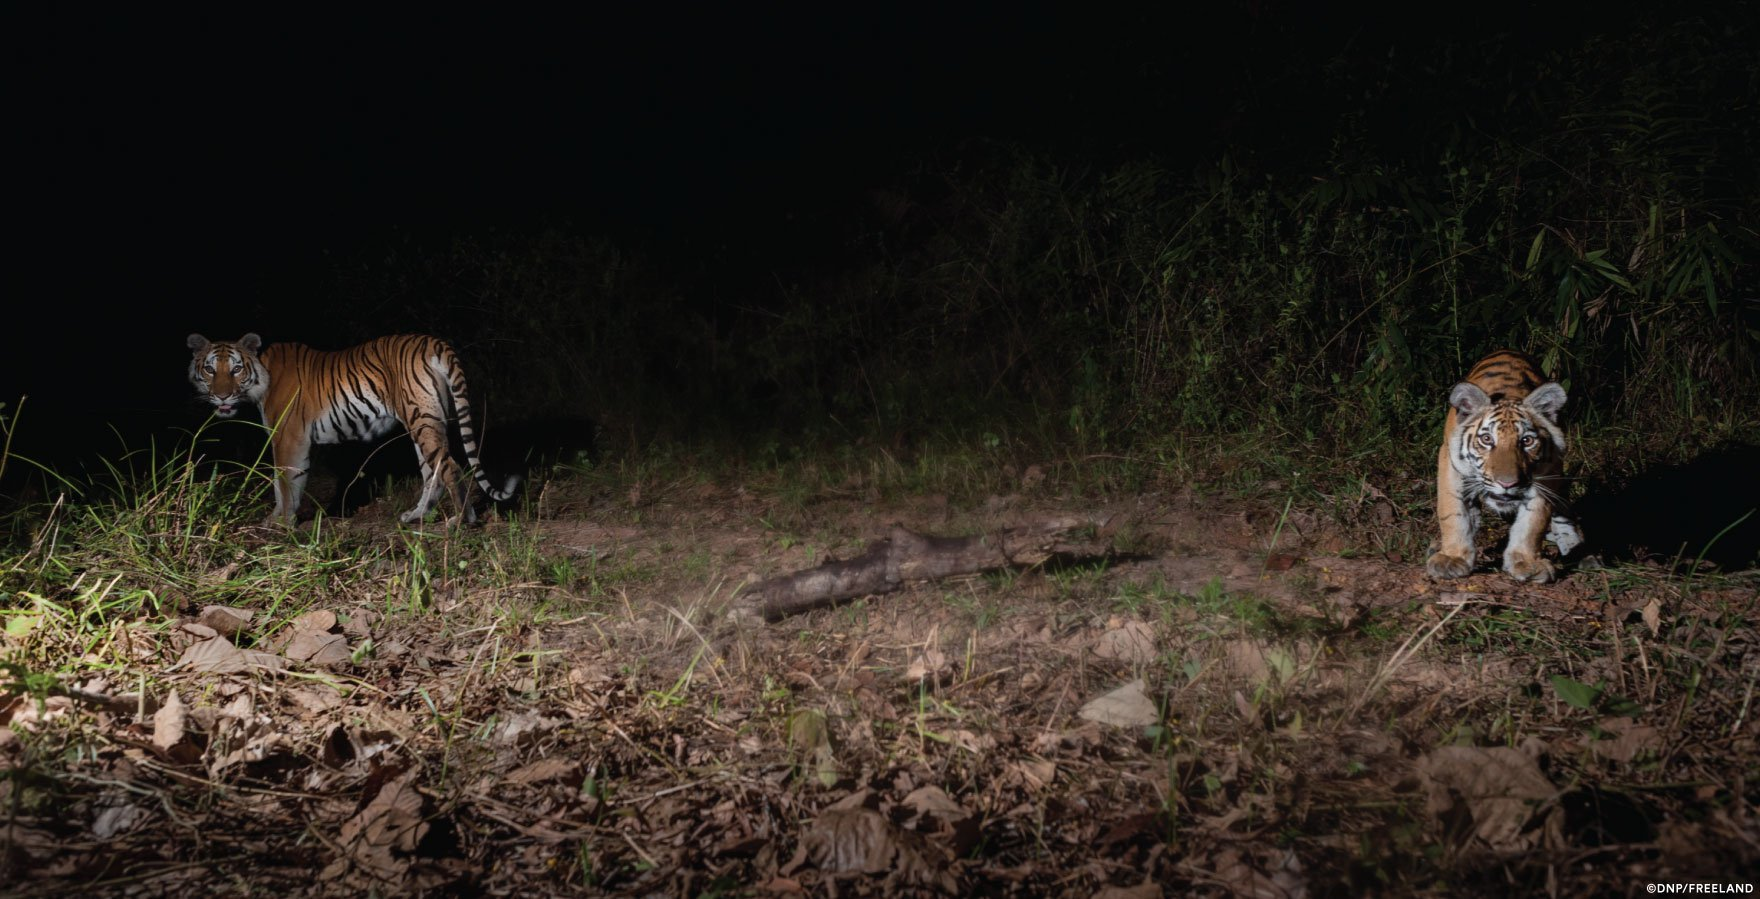 A mother tiger and her cub look curiously at a camera trap set along a forest trail in Eastern Thailand. (bussinesinsider.com)